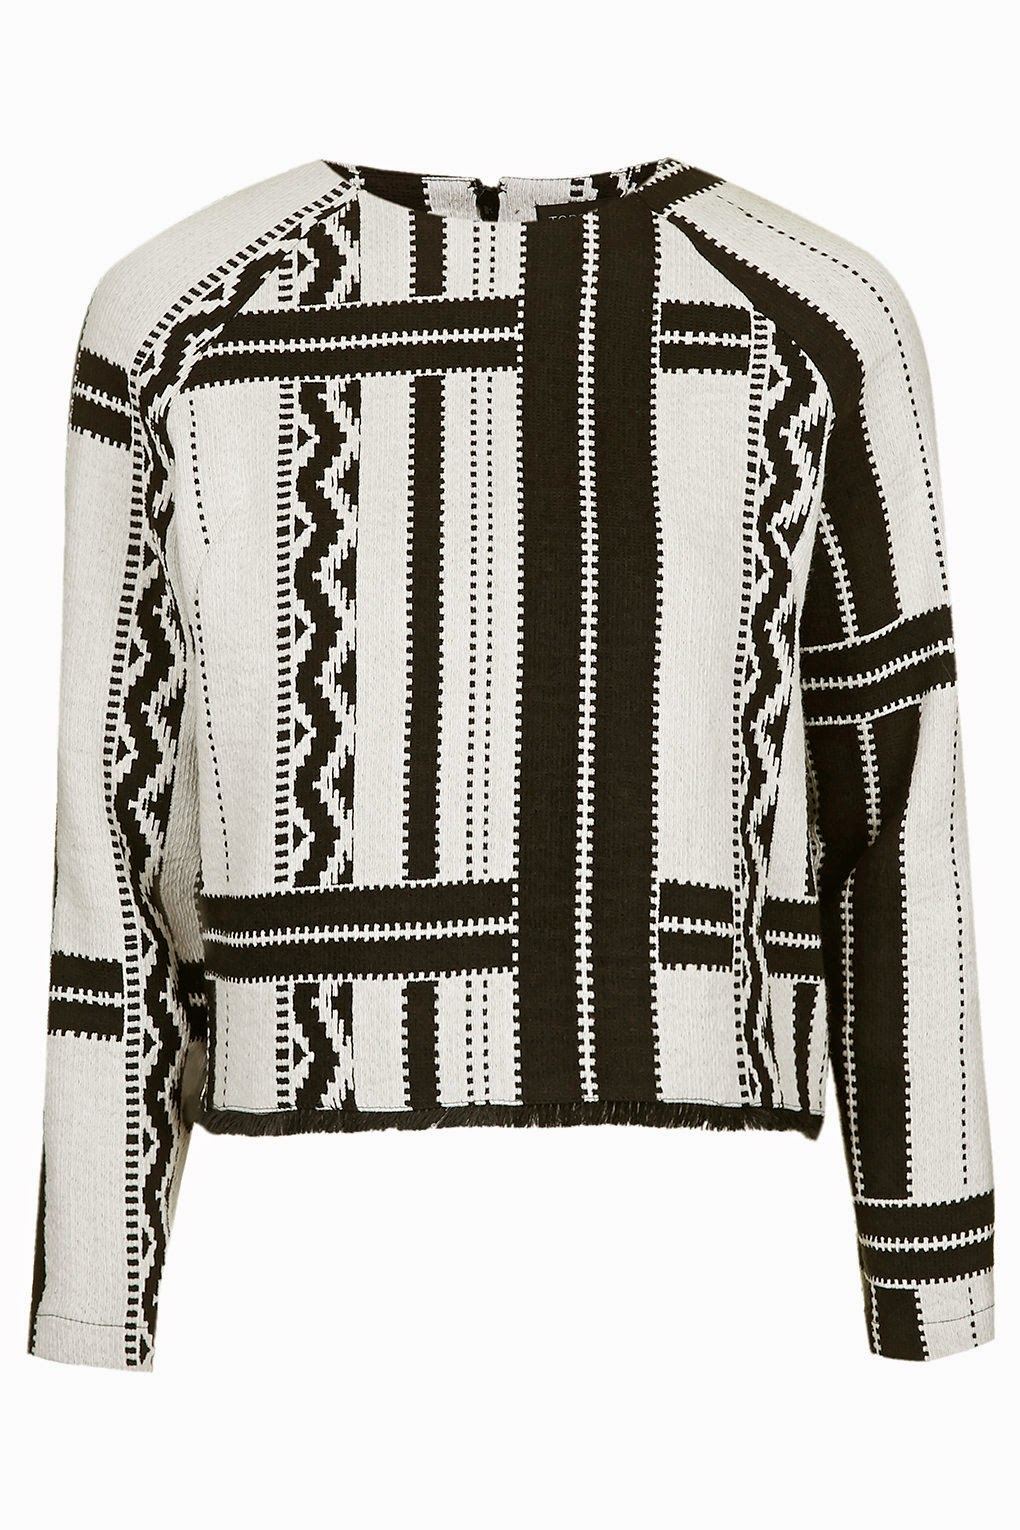 black white print jumper, topshop black white jumper,